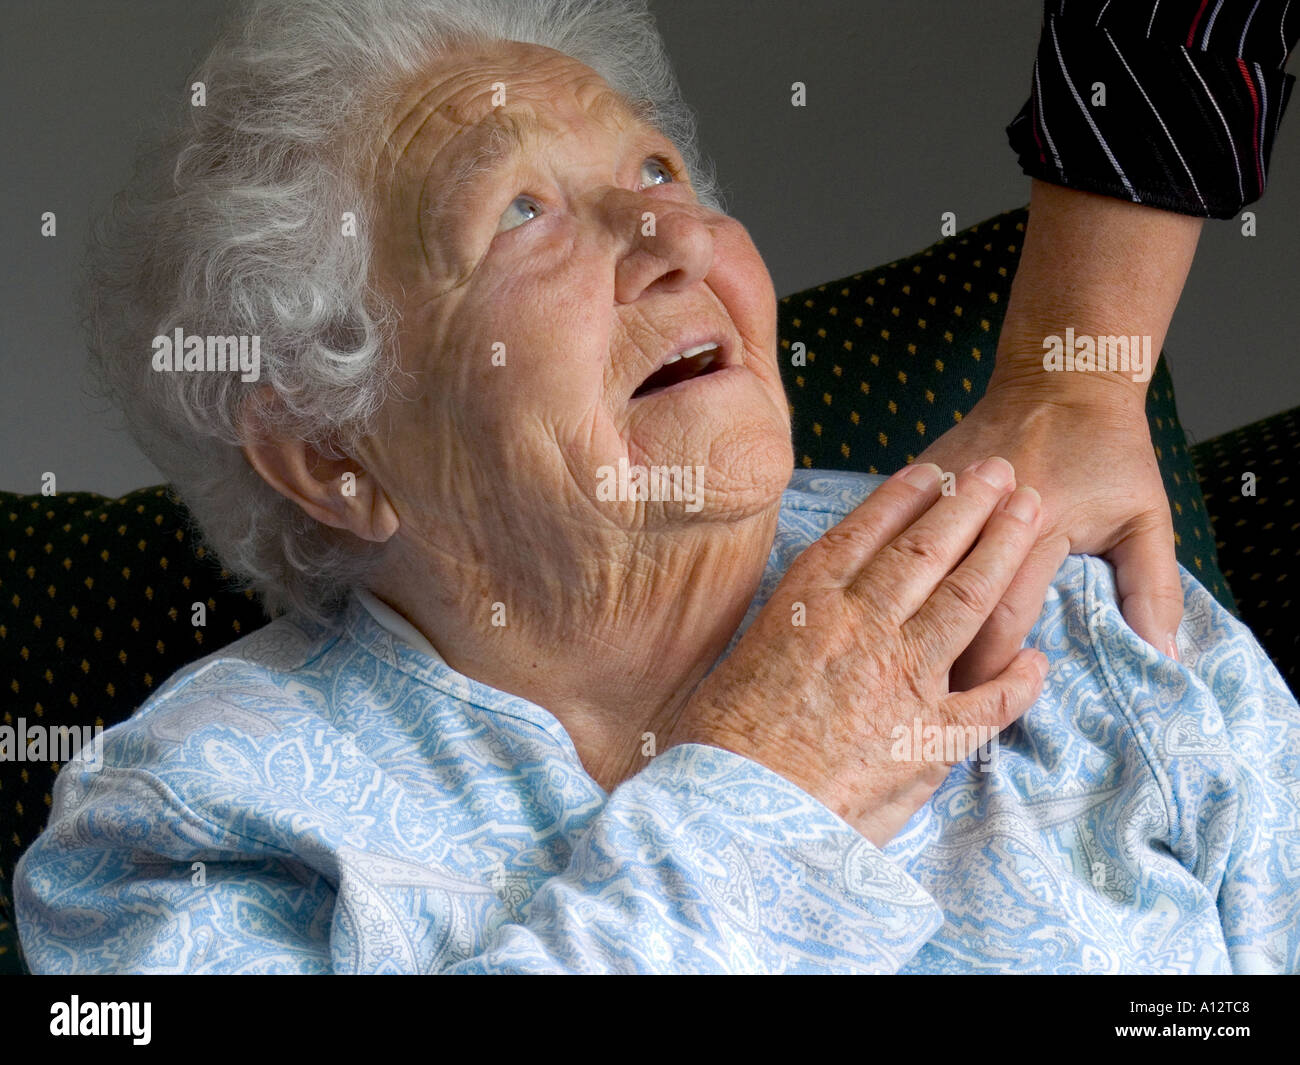 Contented smiling senior old age elderly woman looks up and touches comforting hand of carer - Stock Image